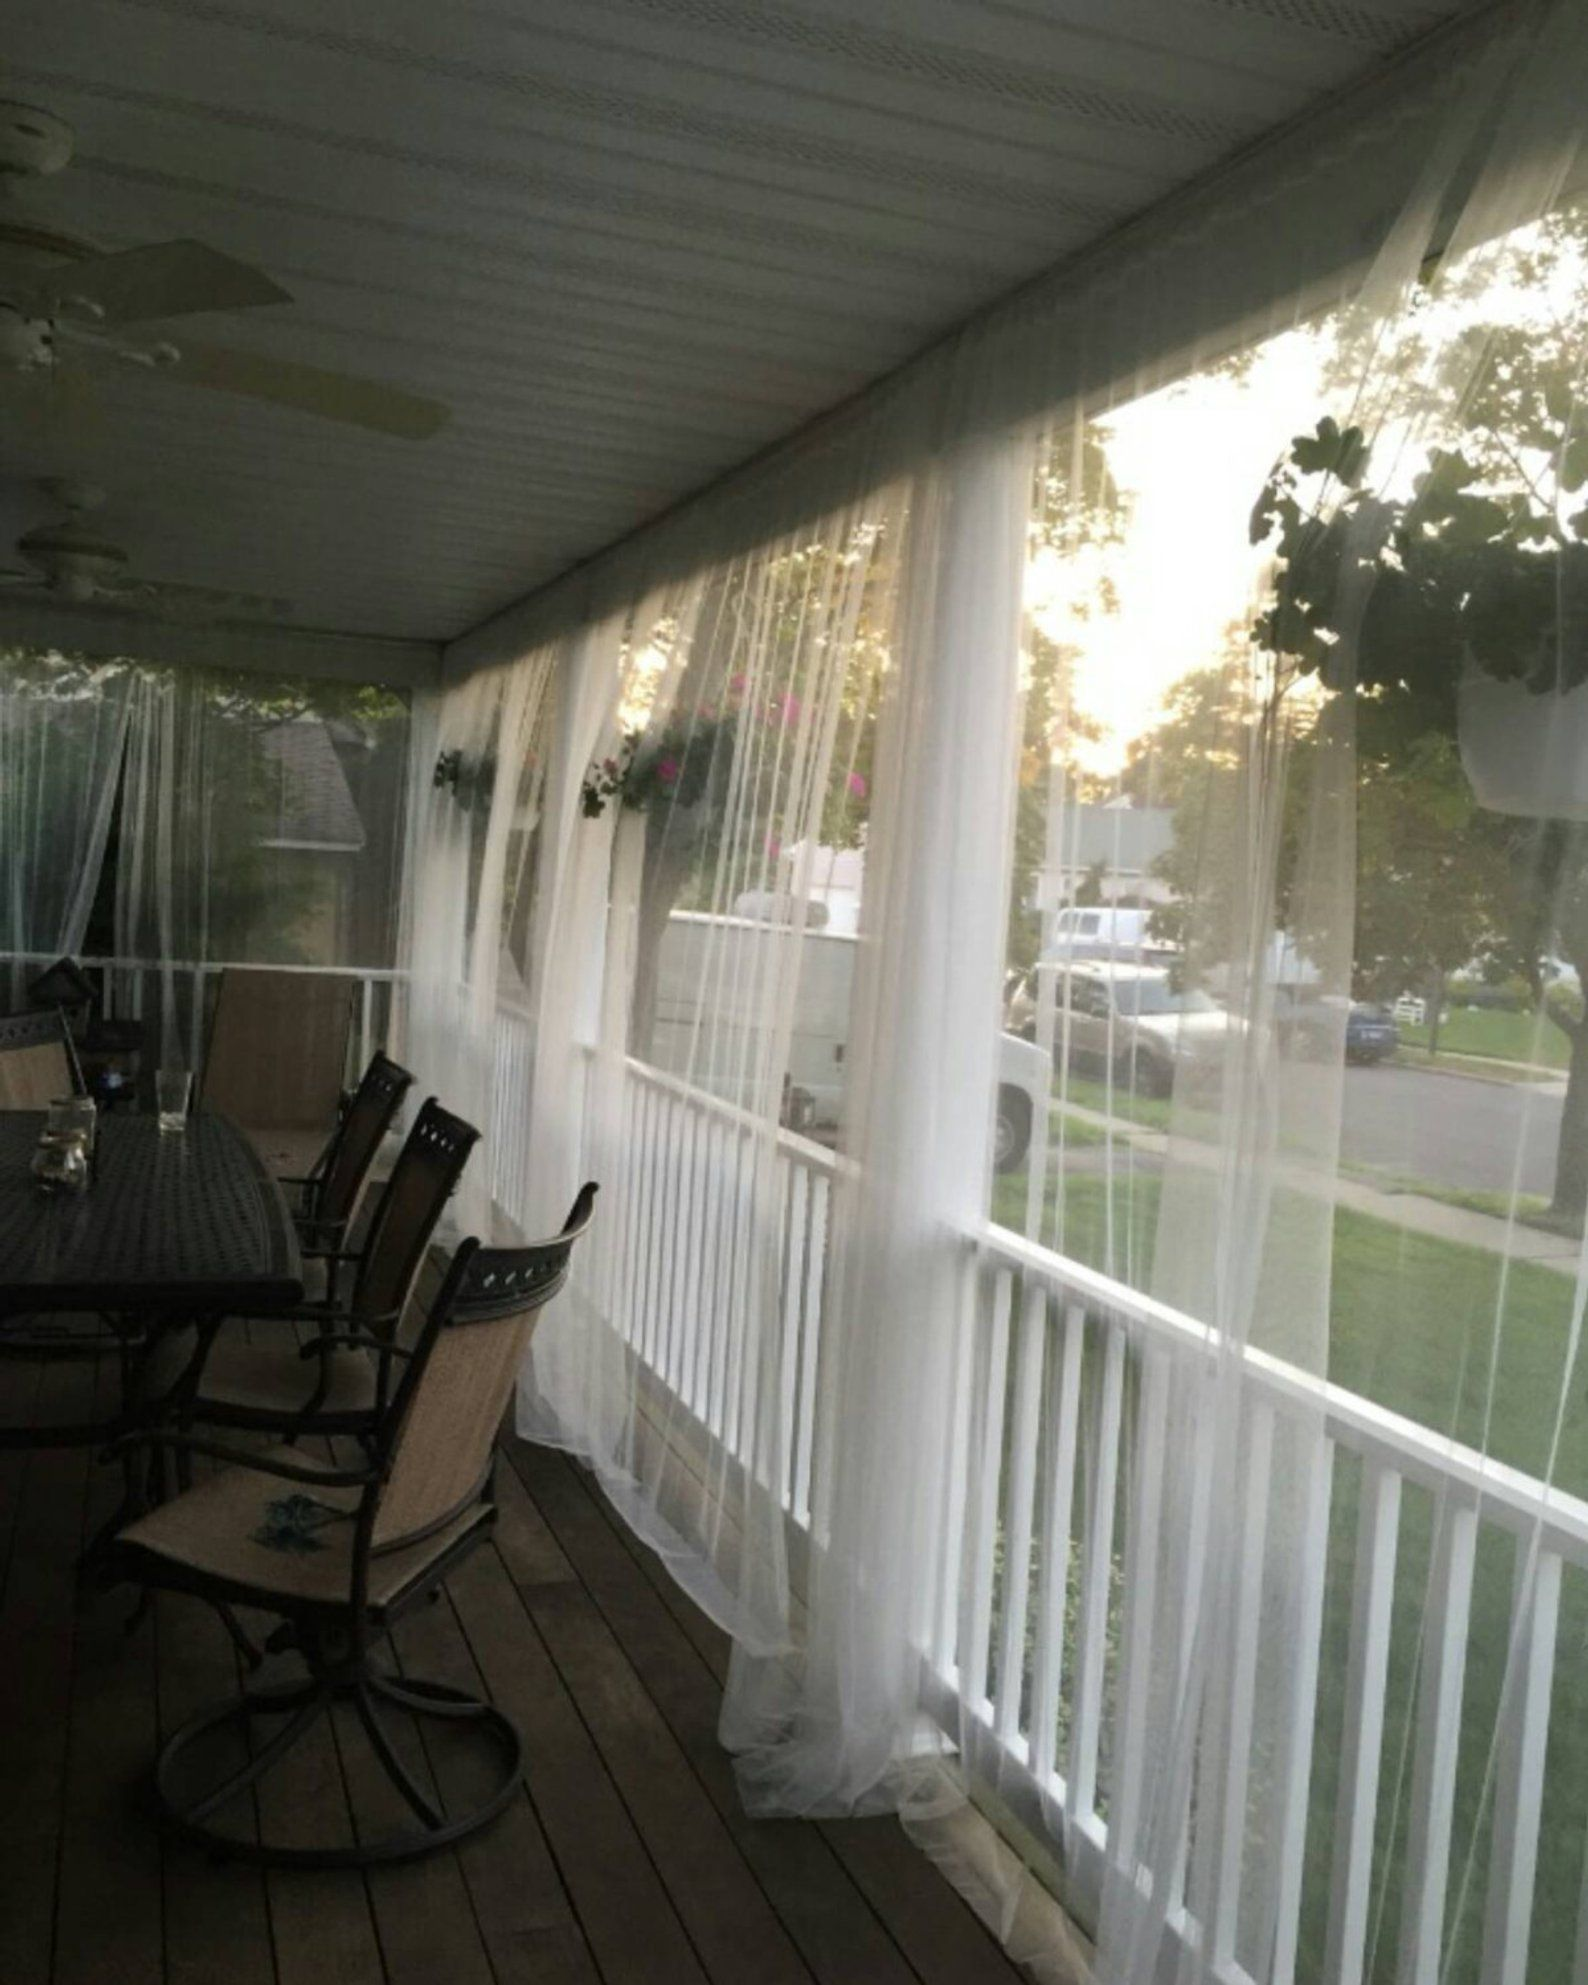 One White Mosquito Netting Curtain For Patio Or Bedroom Window